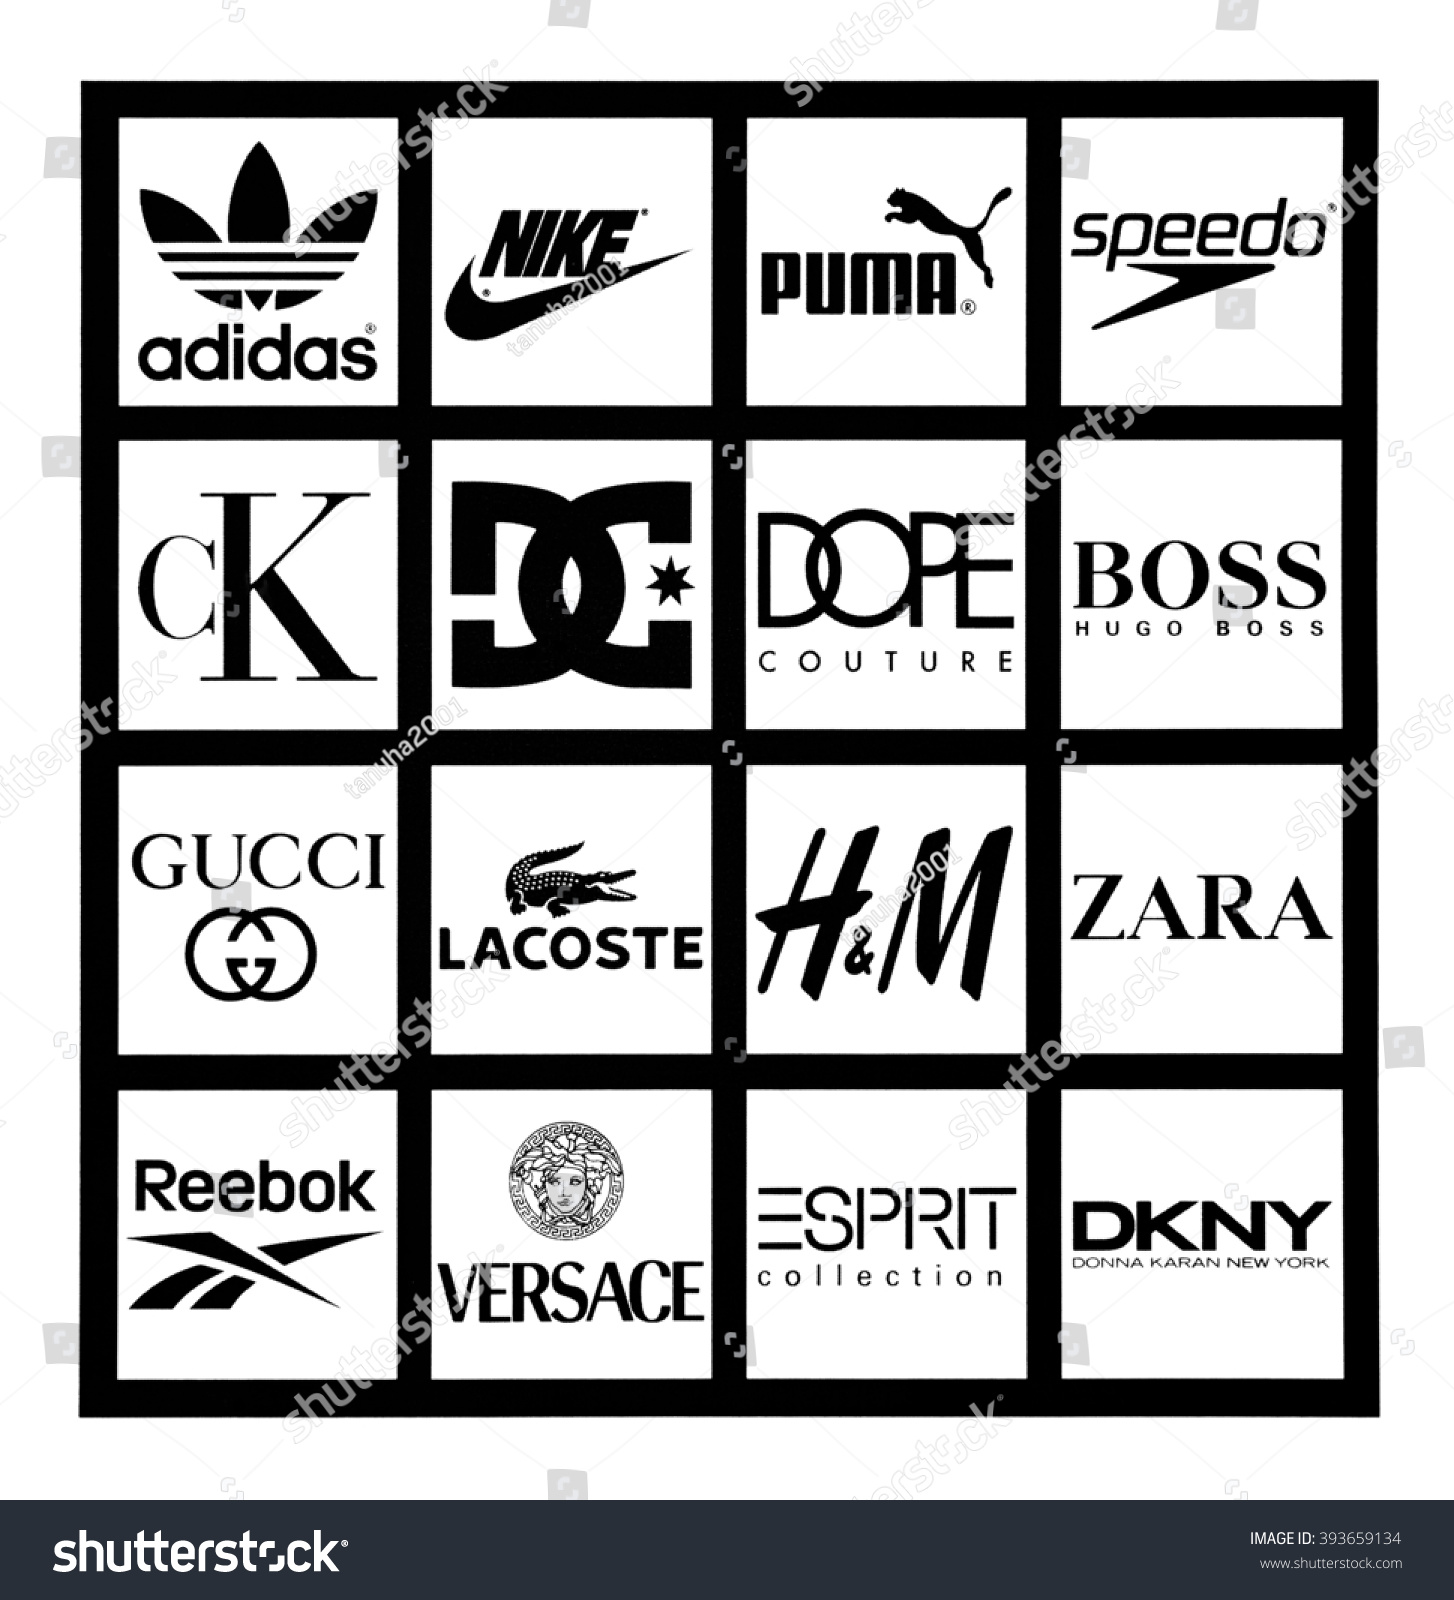 Showing Media & Posts for Most popular clothing brand logos | www ...